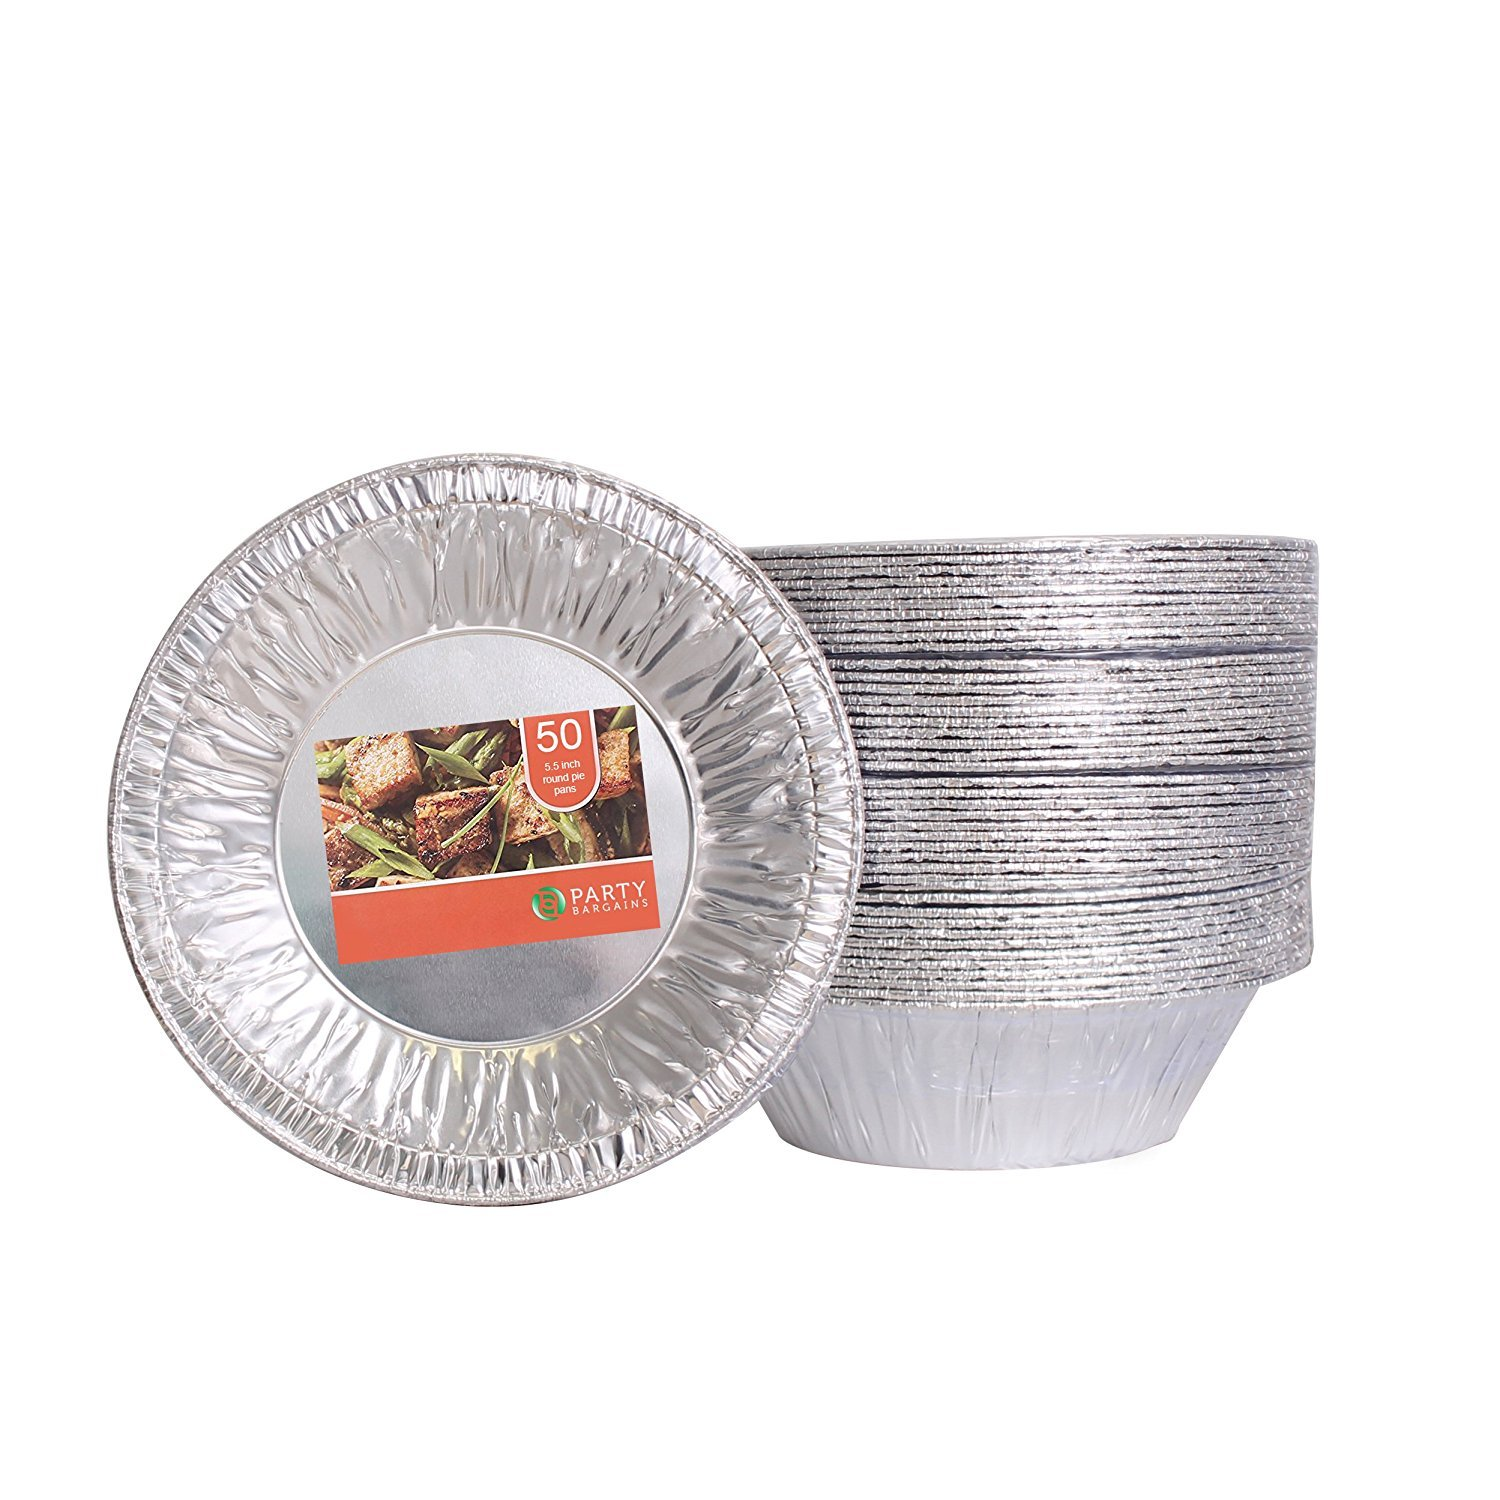 Party Bargains Aluminum Foil Tart/Pie Pans | Perfect for Homemade Cakes & Pies - 5.5 Inch | Pack of 50 by Party Bargains